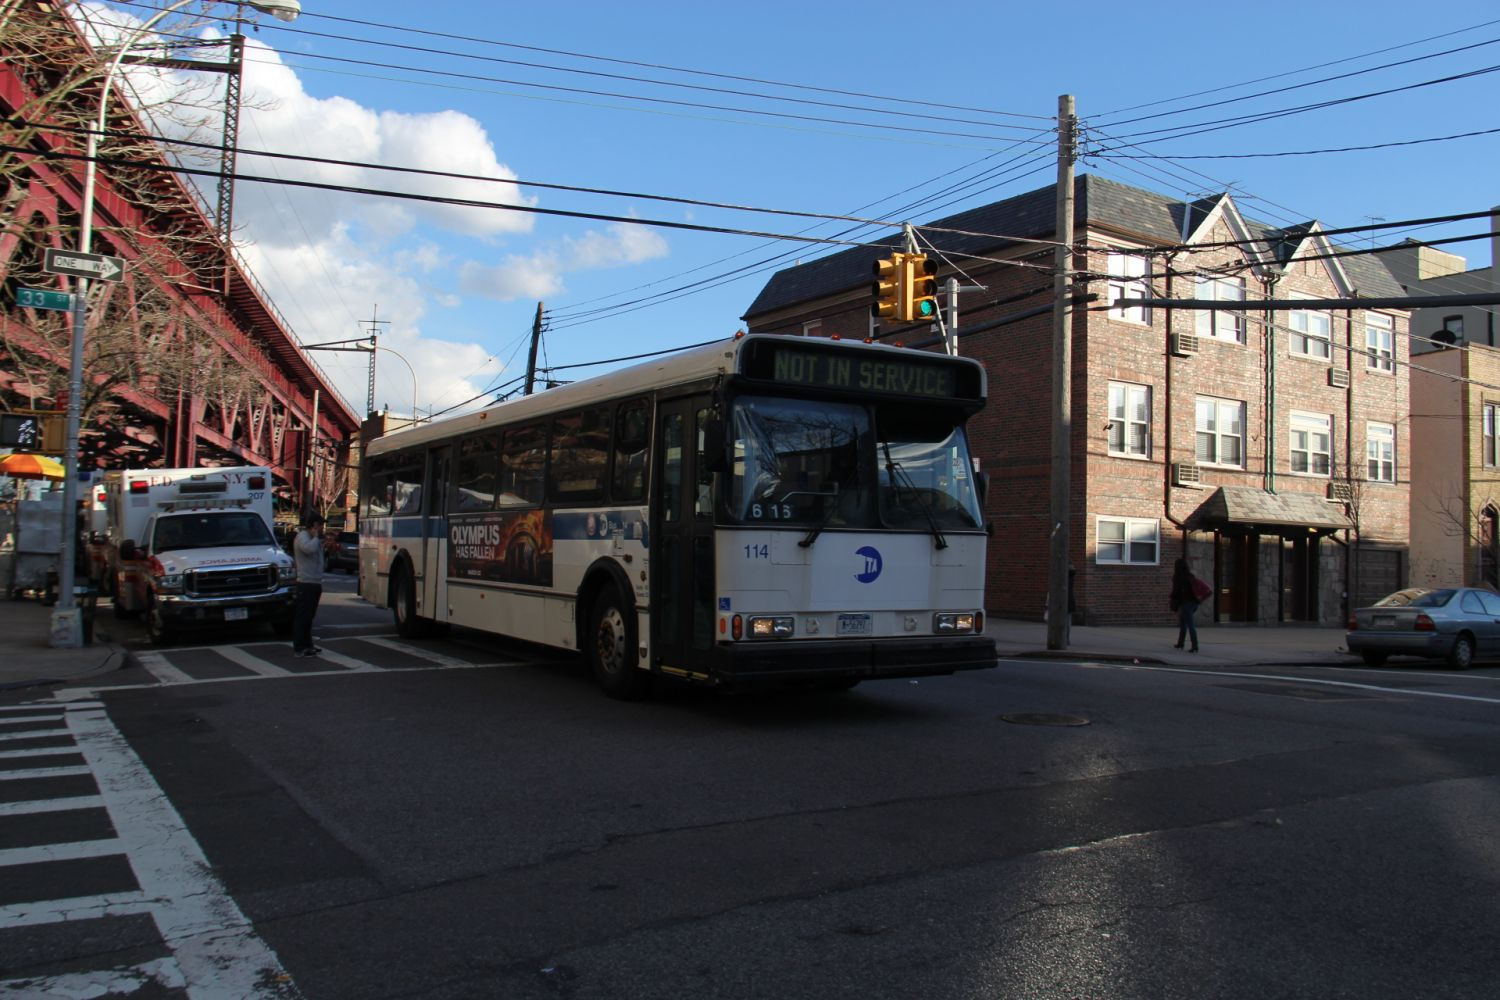 OOS Orion V at 23rd Avenue and 33rd Street